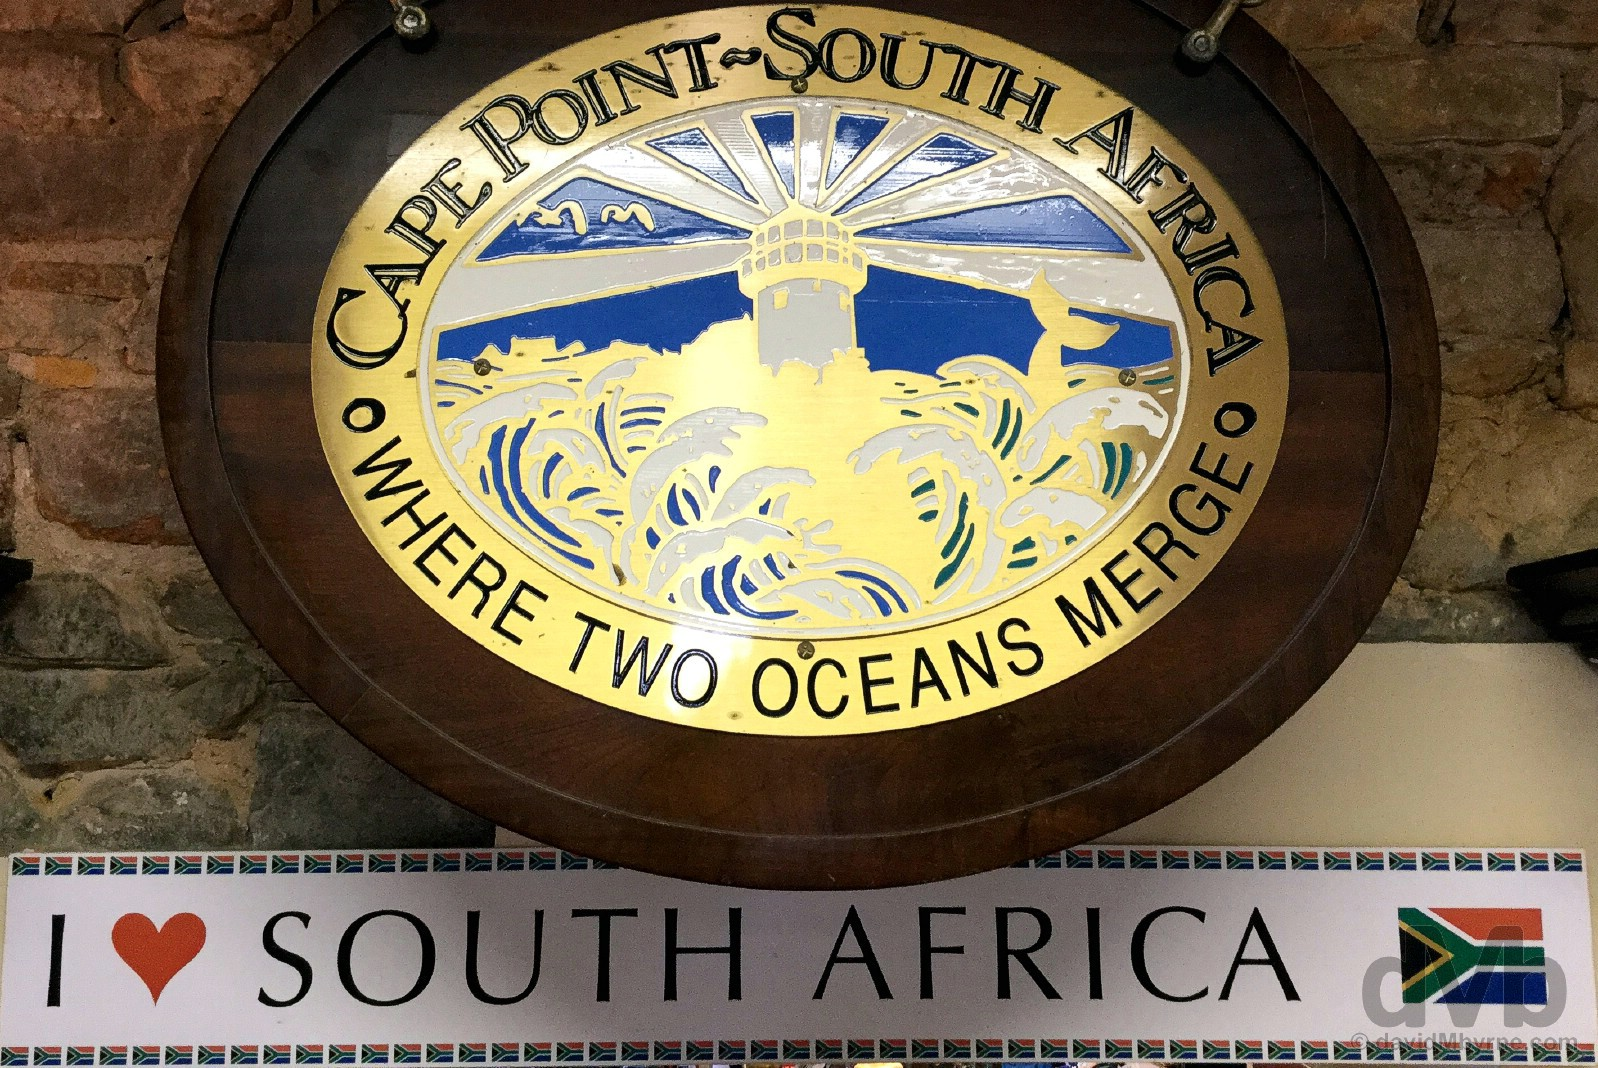 Cape Point. 'Where Two Oceans Merge'. In the gift shop at Cape Point, Cape Peninsula, Western Cape, South Africa. February 17, 2017.